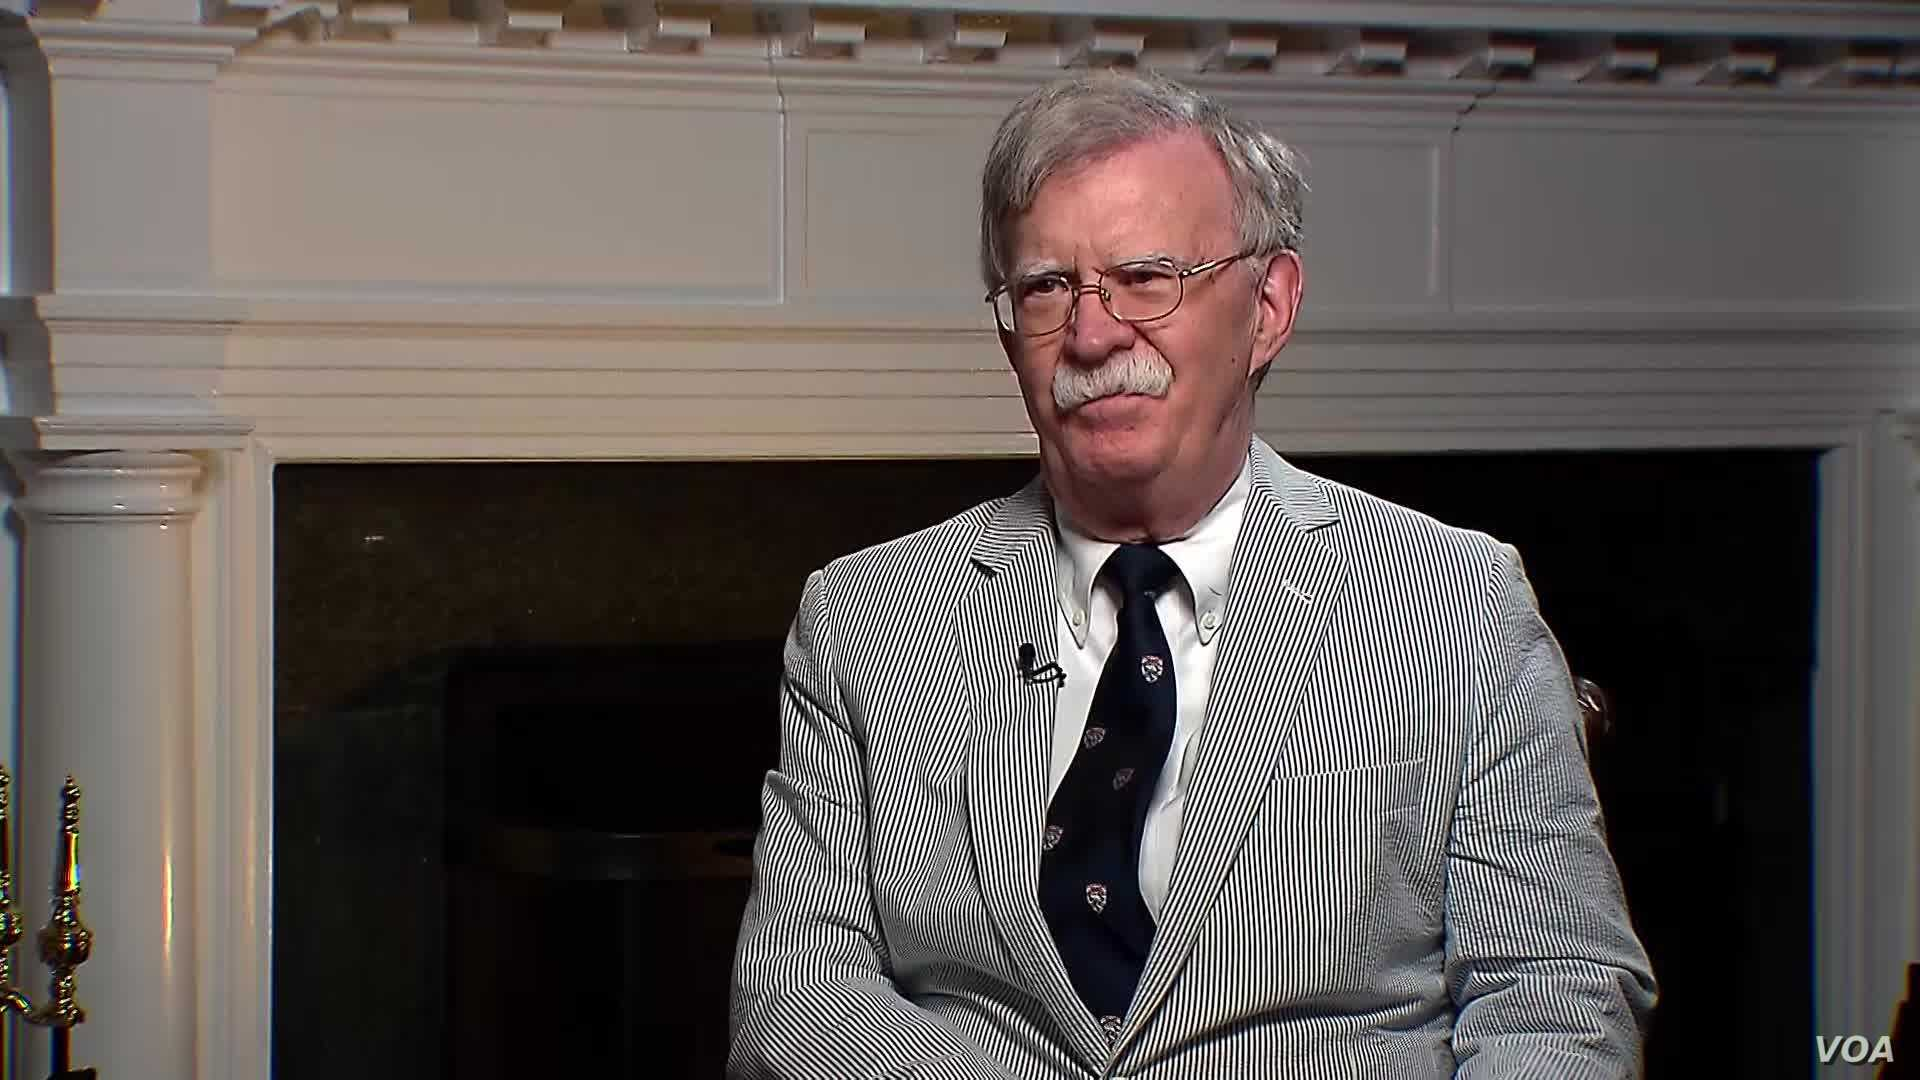 VOA Interview: John Bolton's Take on World's Hotspots